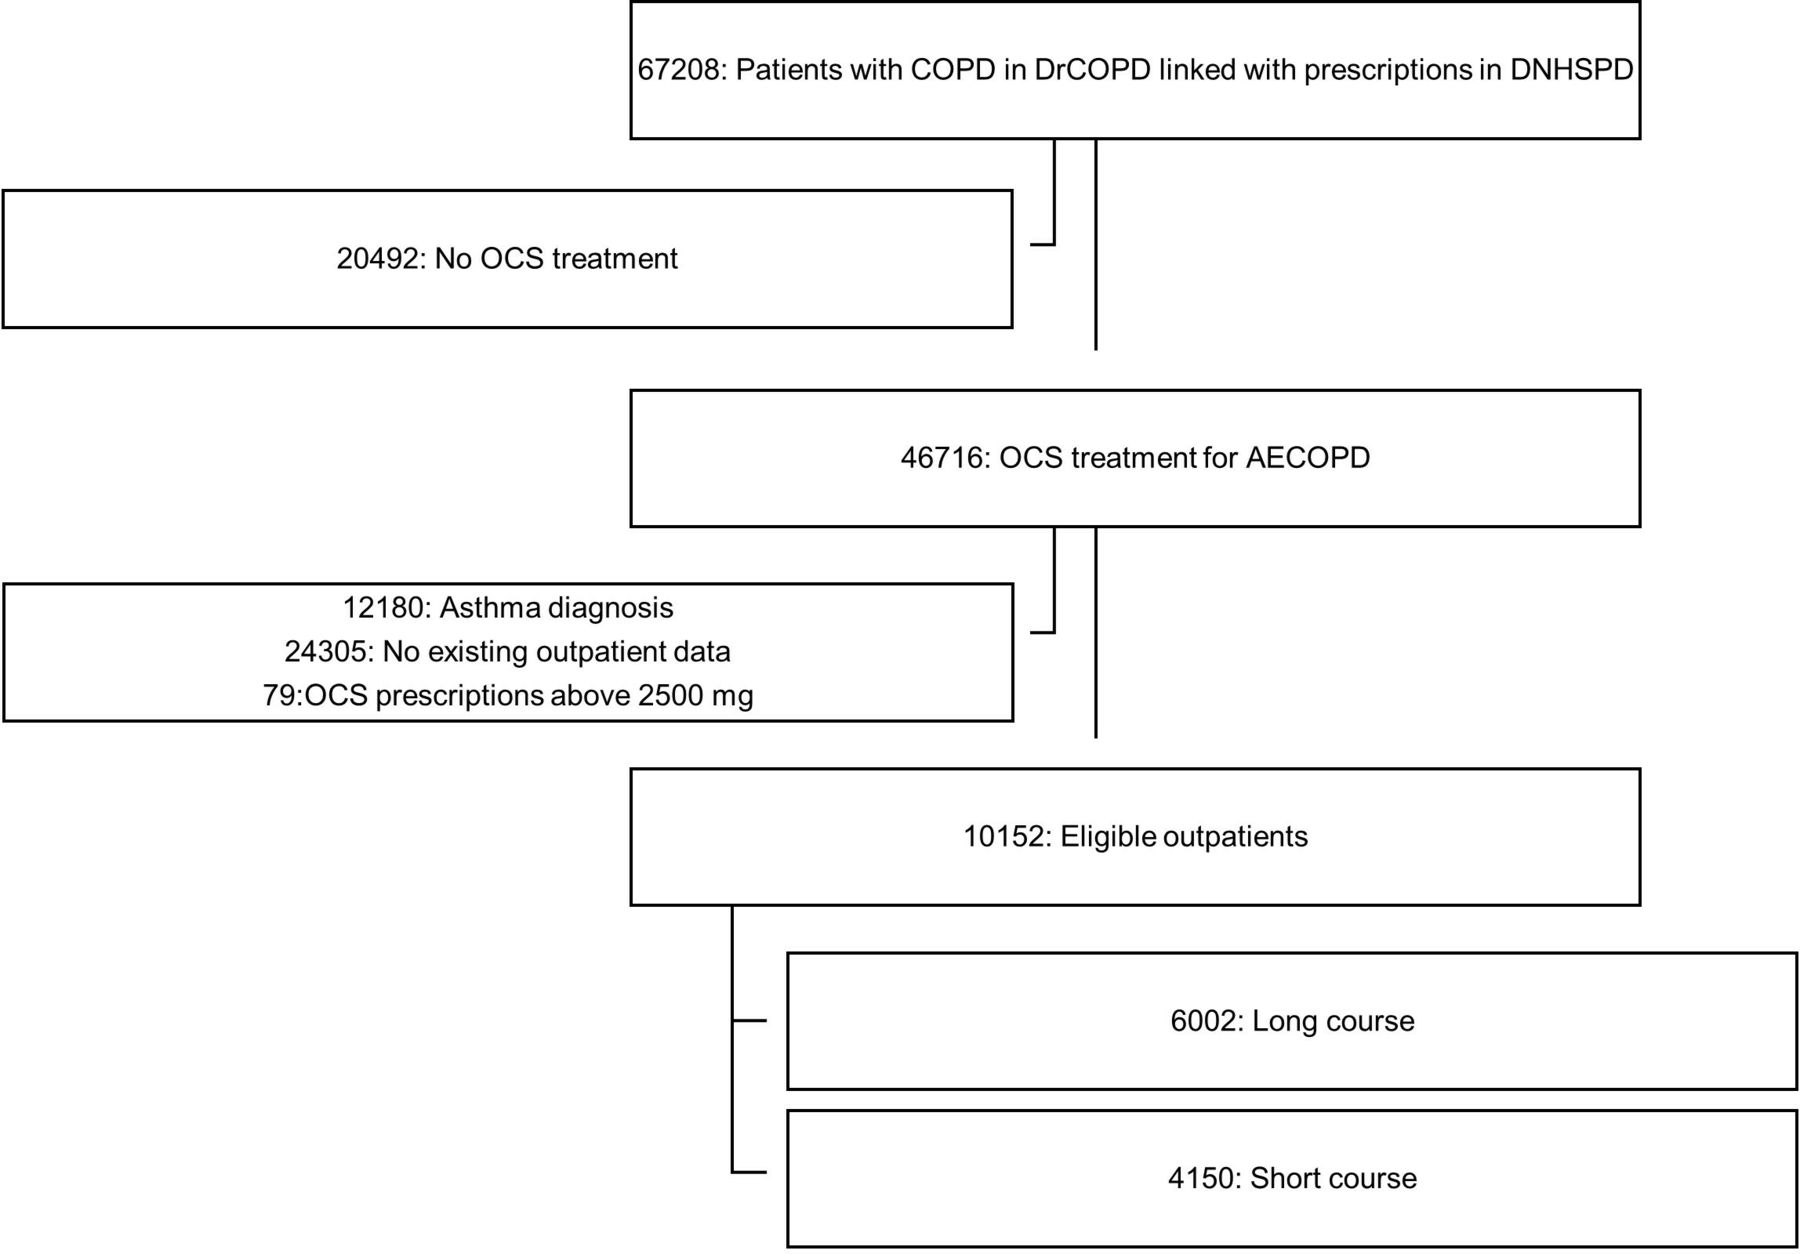 COPD exacerbations: the impact of long versus short courses